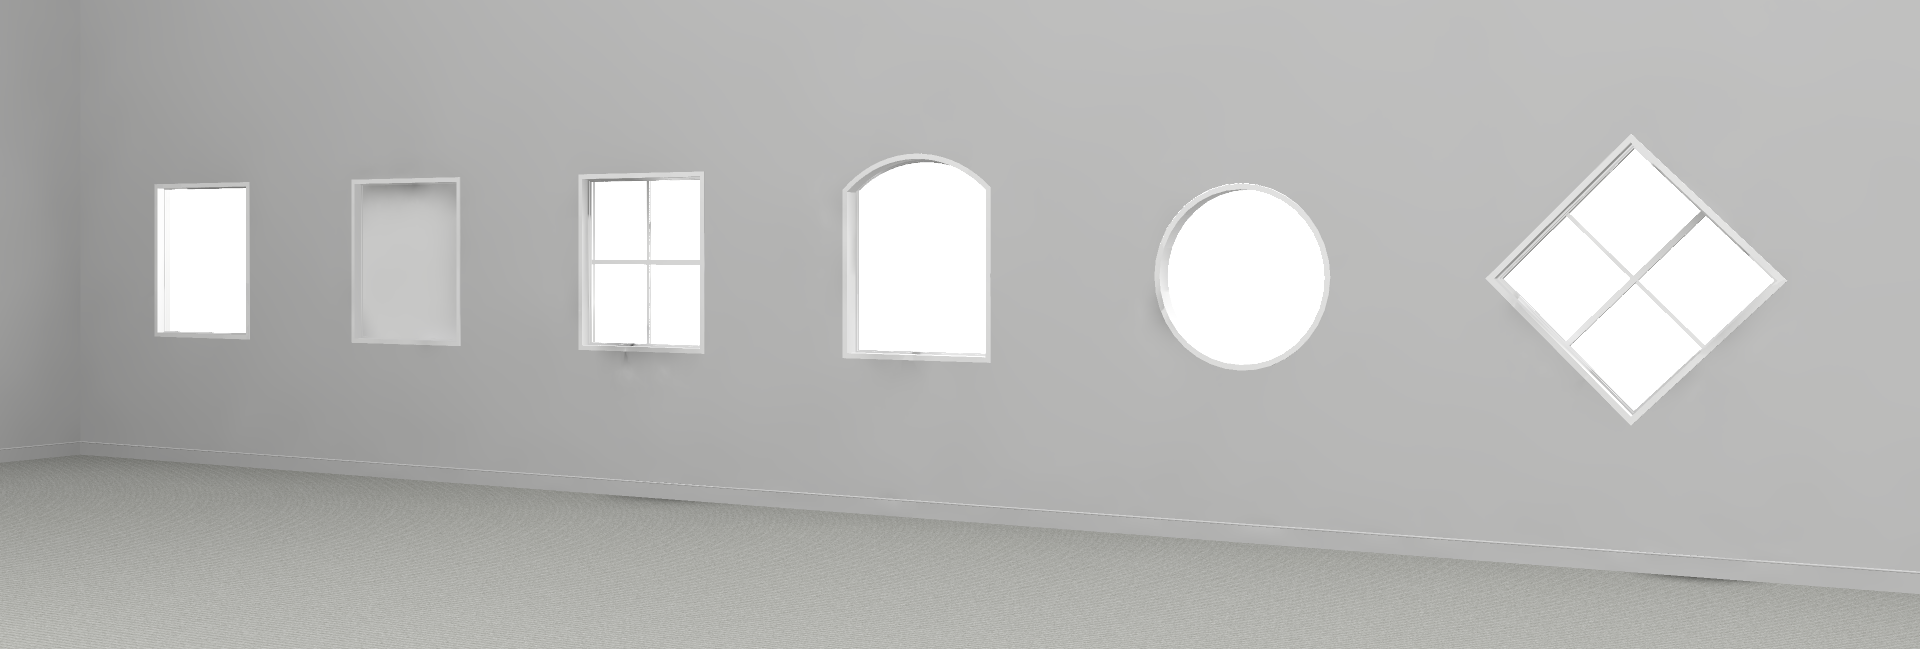 Window_types.png